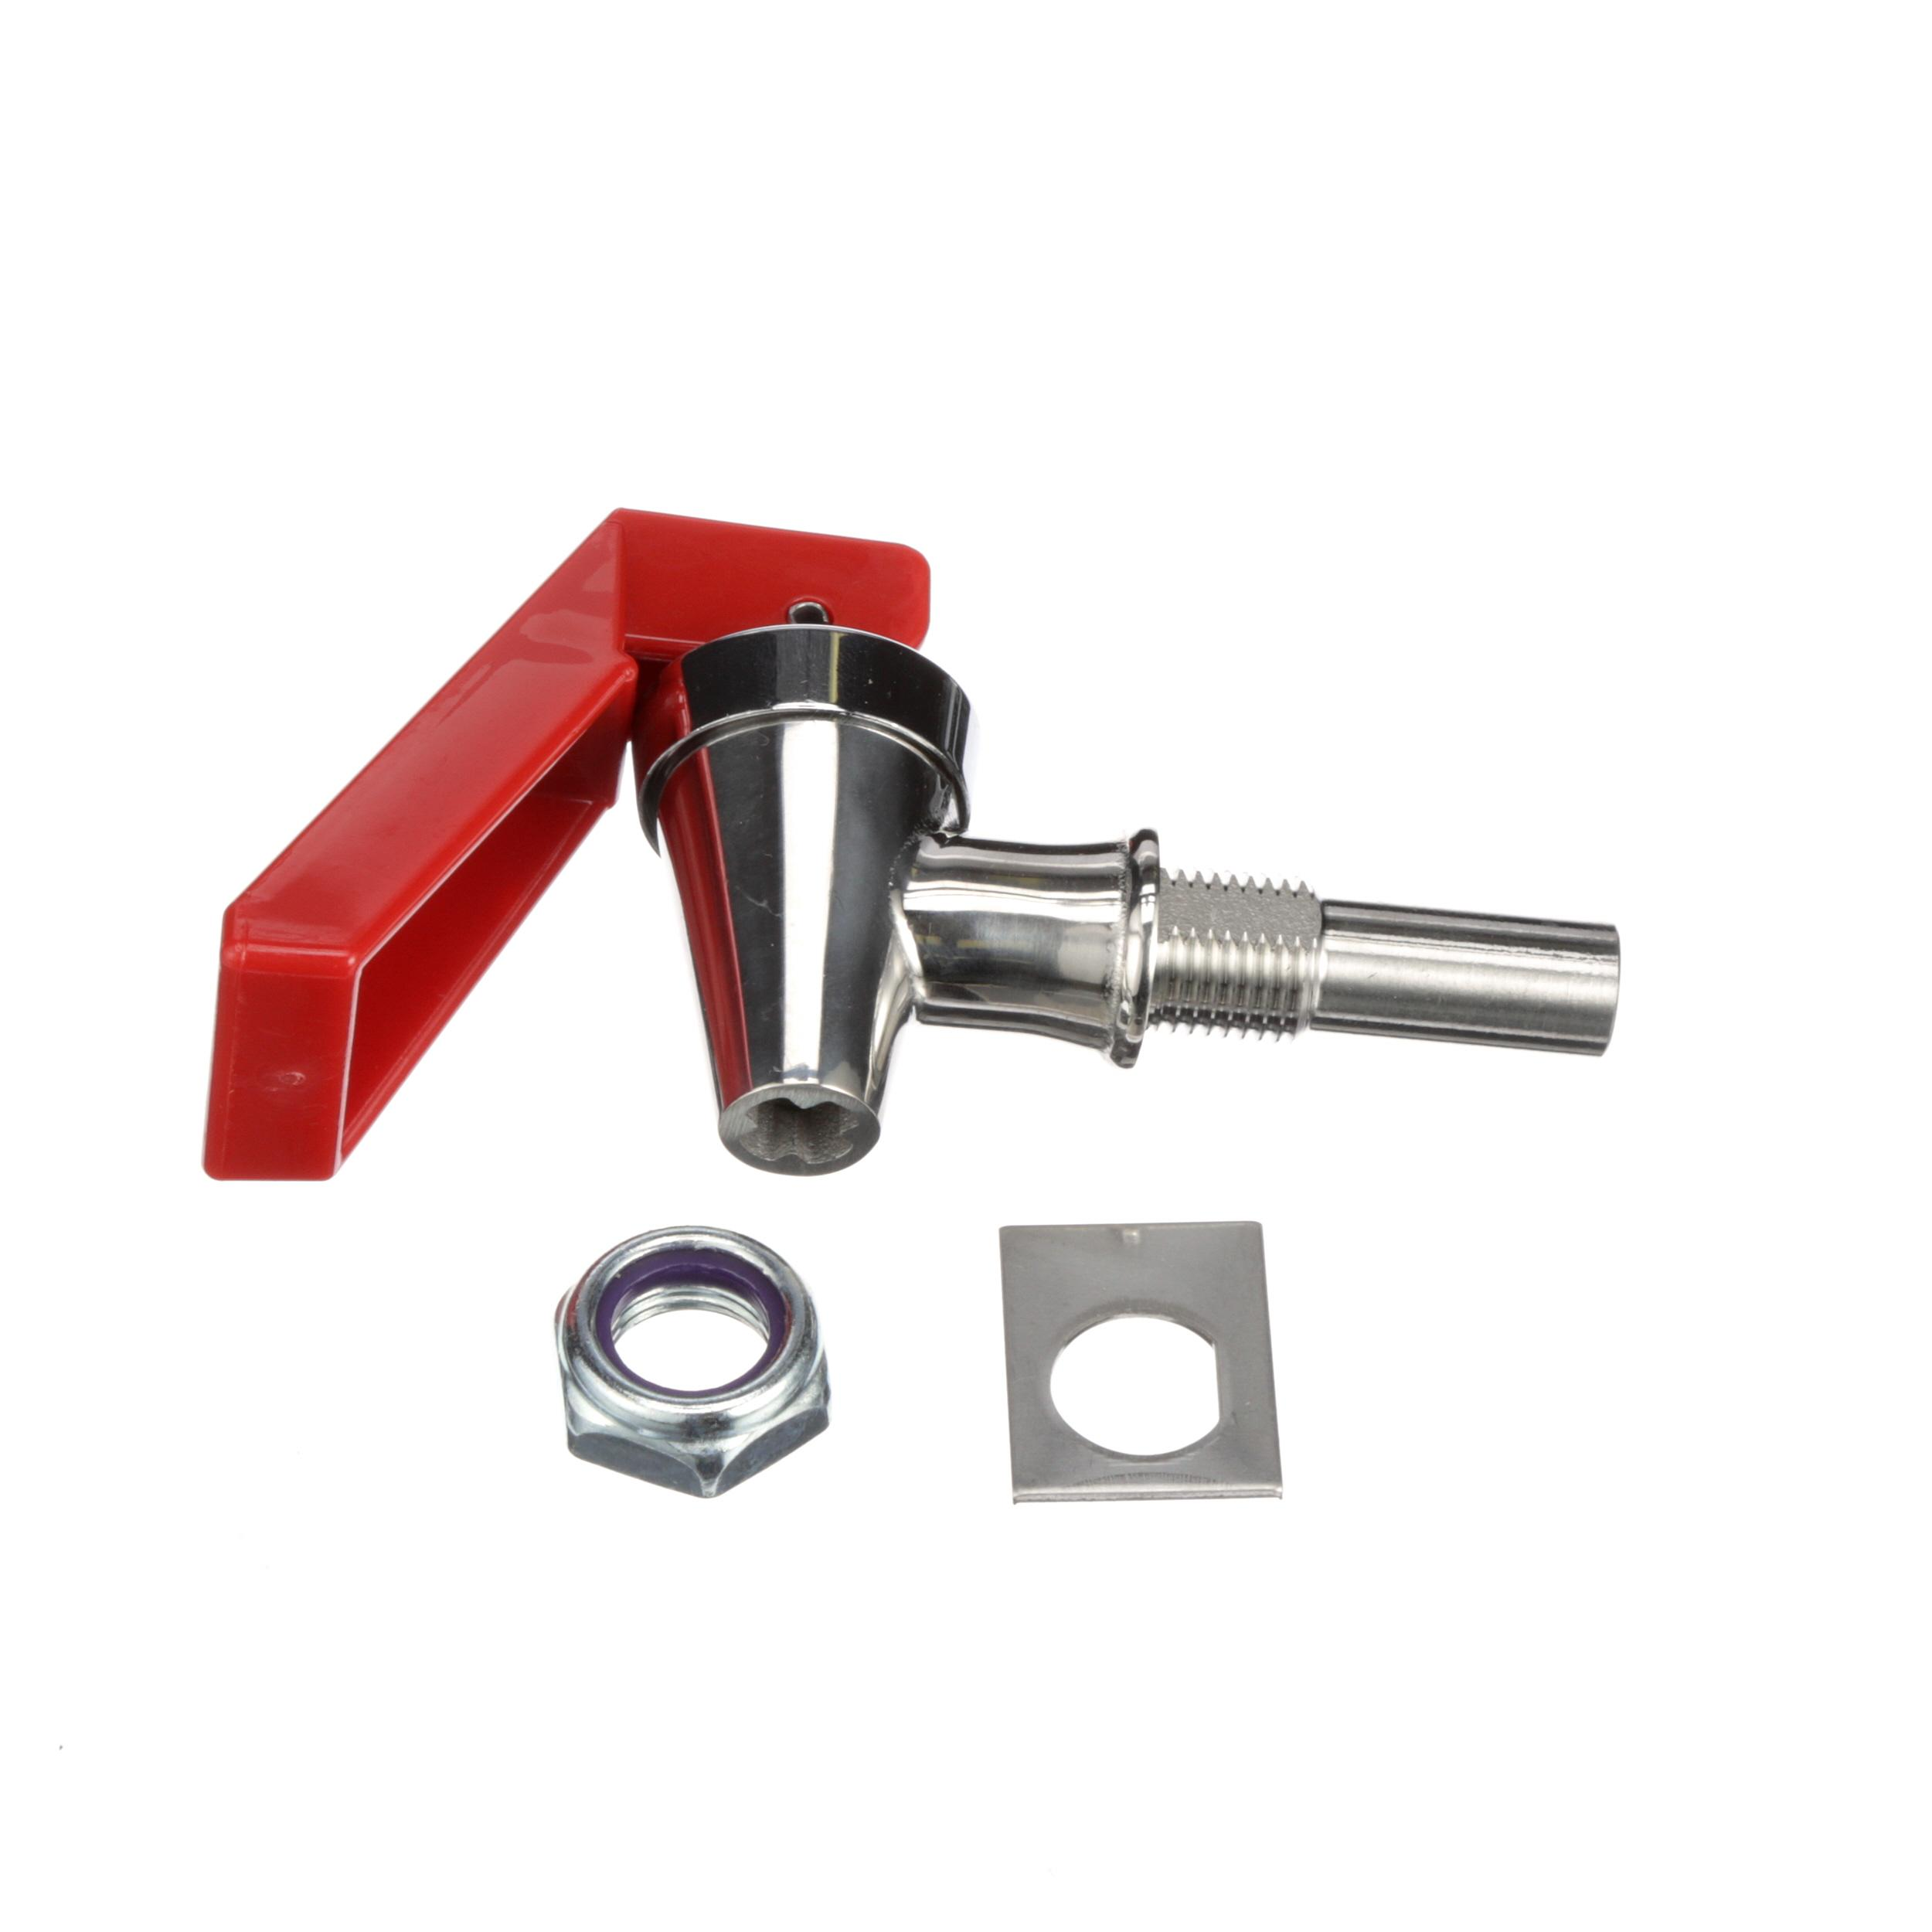 WILBUR CURTIS FAUCET KIT, HOT WATER